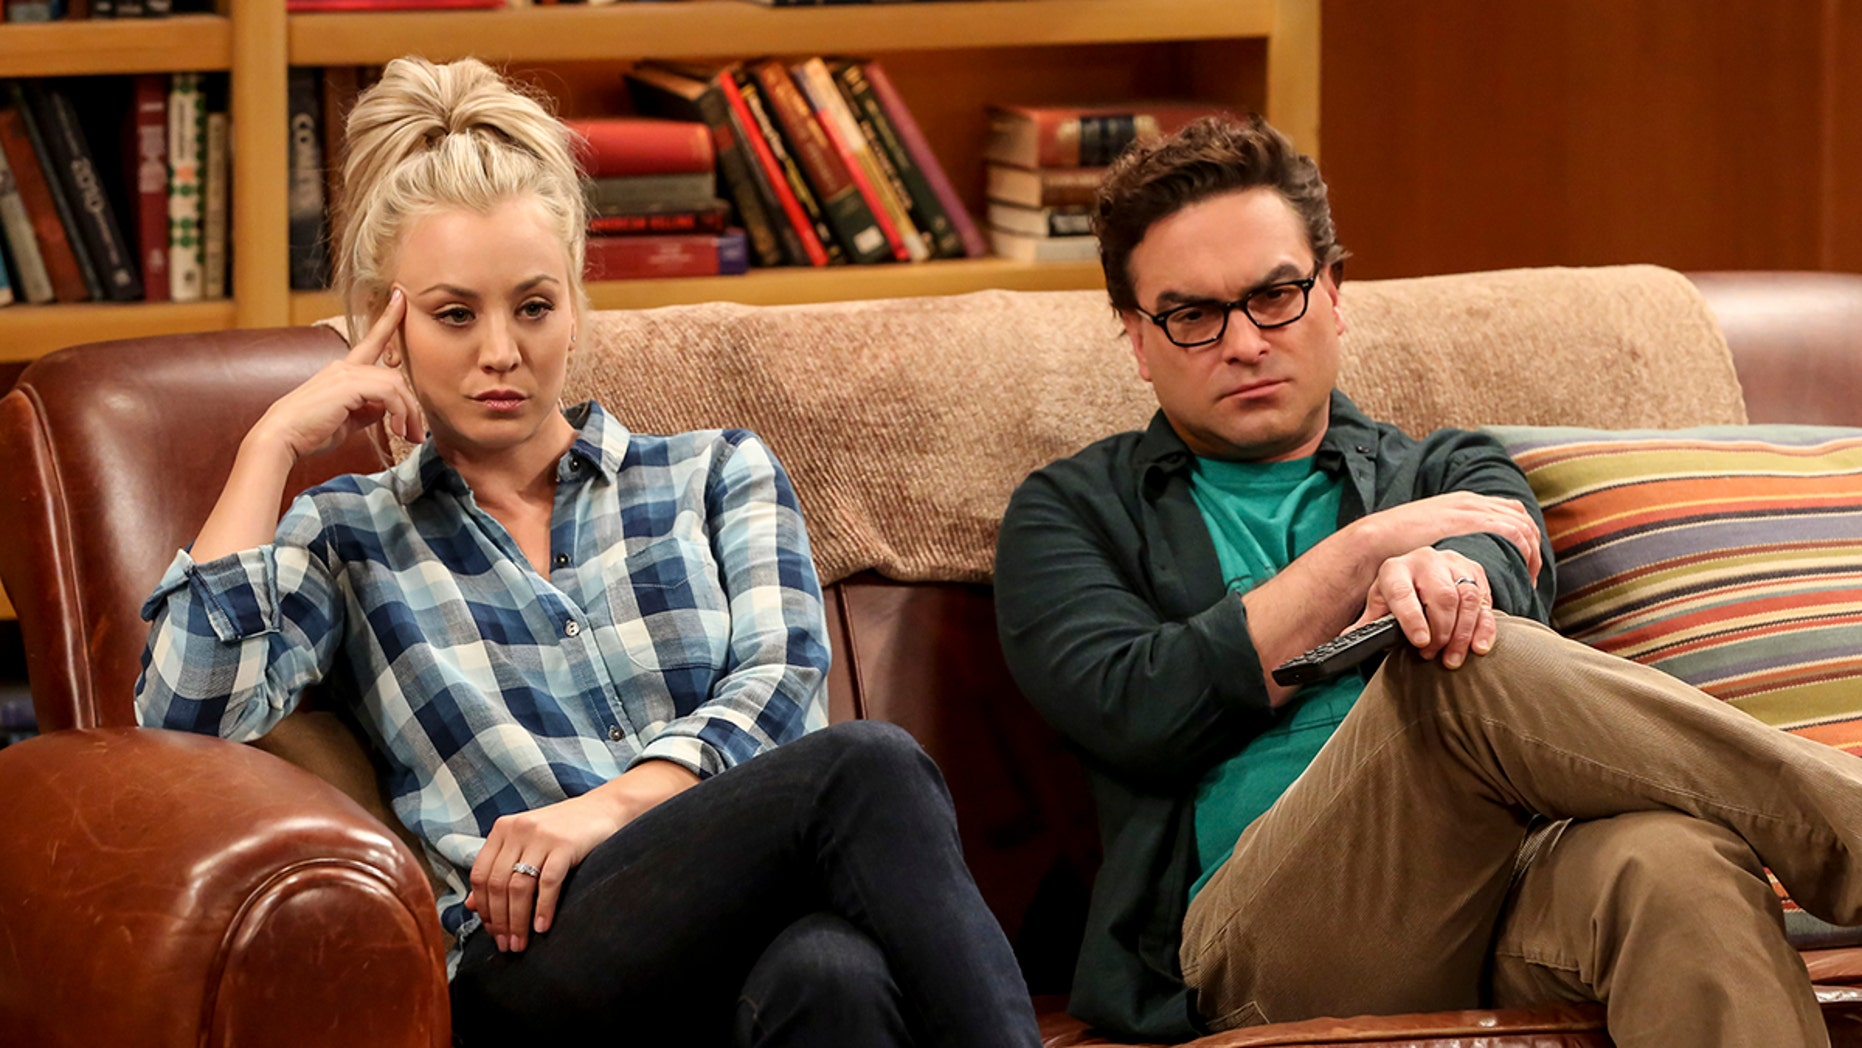 """The Geology Methodology"" – Pictured: Penny (Kaley Cuoco) and Leonard Hofstadter (Johnny Galecki). Sheldon and Bert collaborate on a research project, despite Sheldon's embarrassment. Also, Penny and Bernadette coach Koothrappali on how to navigate his relationship with Ruchi (Swati Kapila), on THE BIG BANG THEORY, Thursday, Nov. 9 (8:00-8:31 PM, ET/PT), on the CBS Television Network. Photo: Michael Yarish/Warner Bros. Entertainment Inc. © 2017 WBEI. All rights reserved."